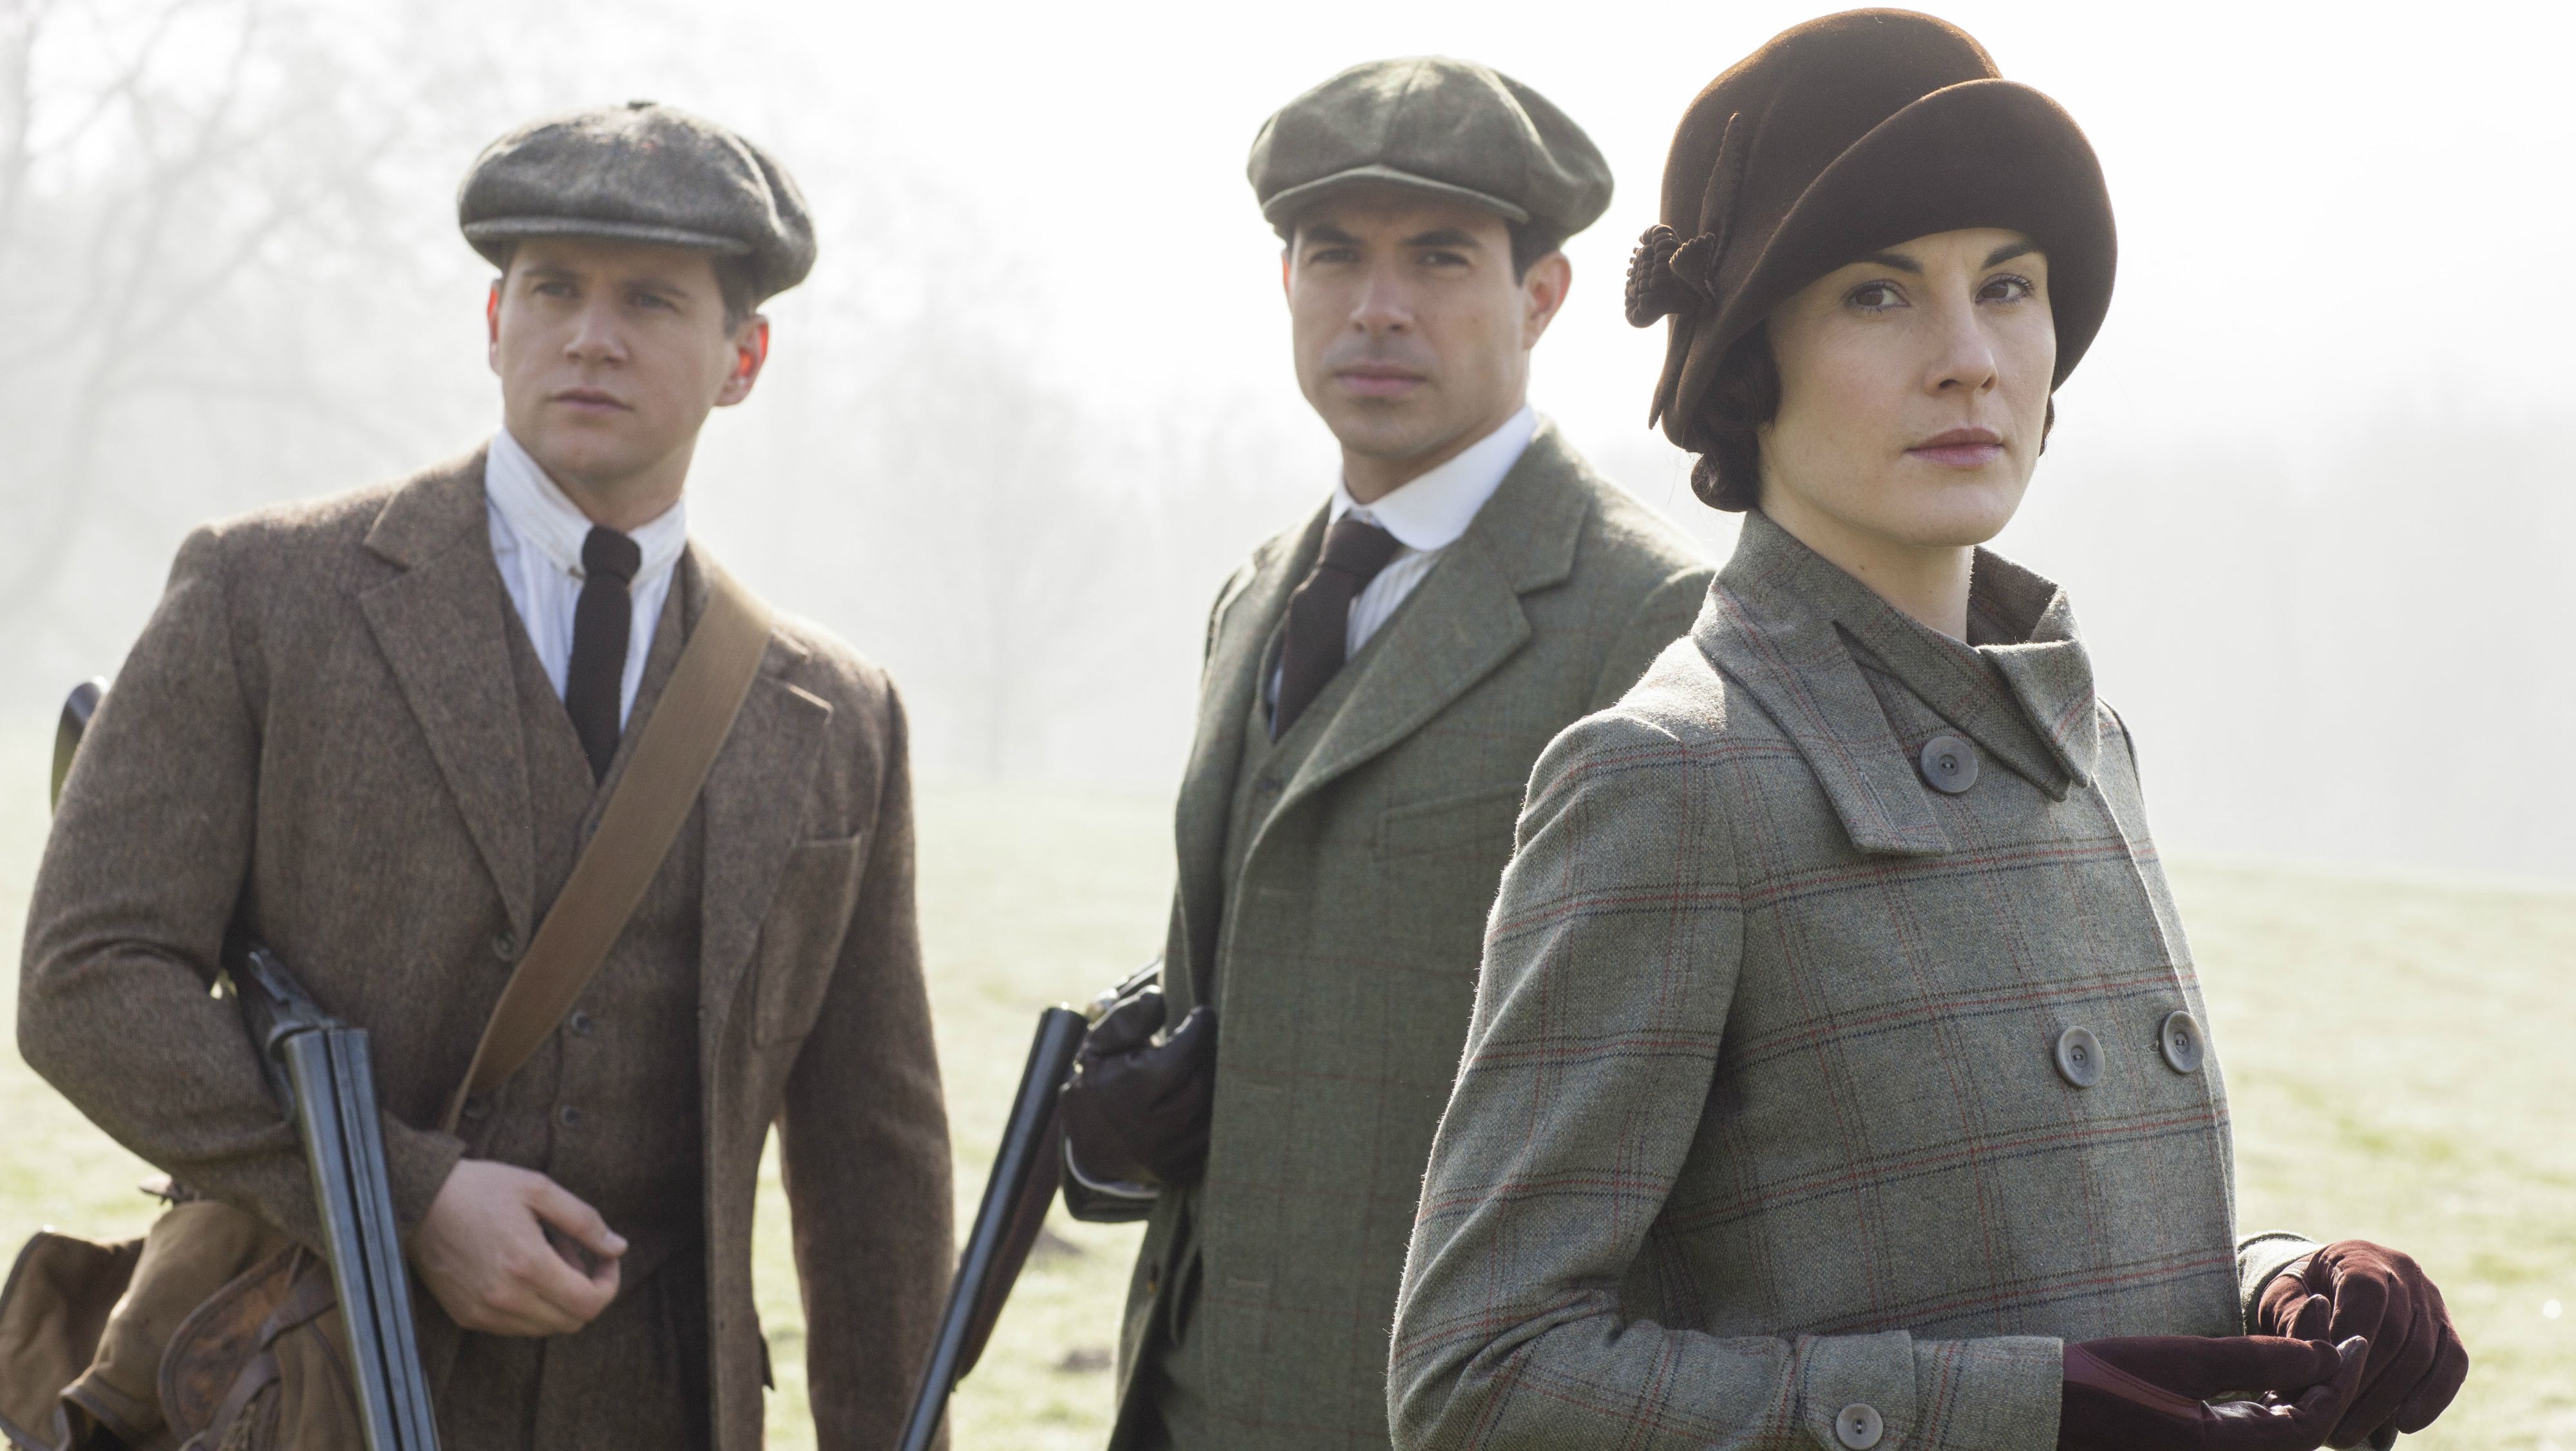 Downton Abbey with guns